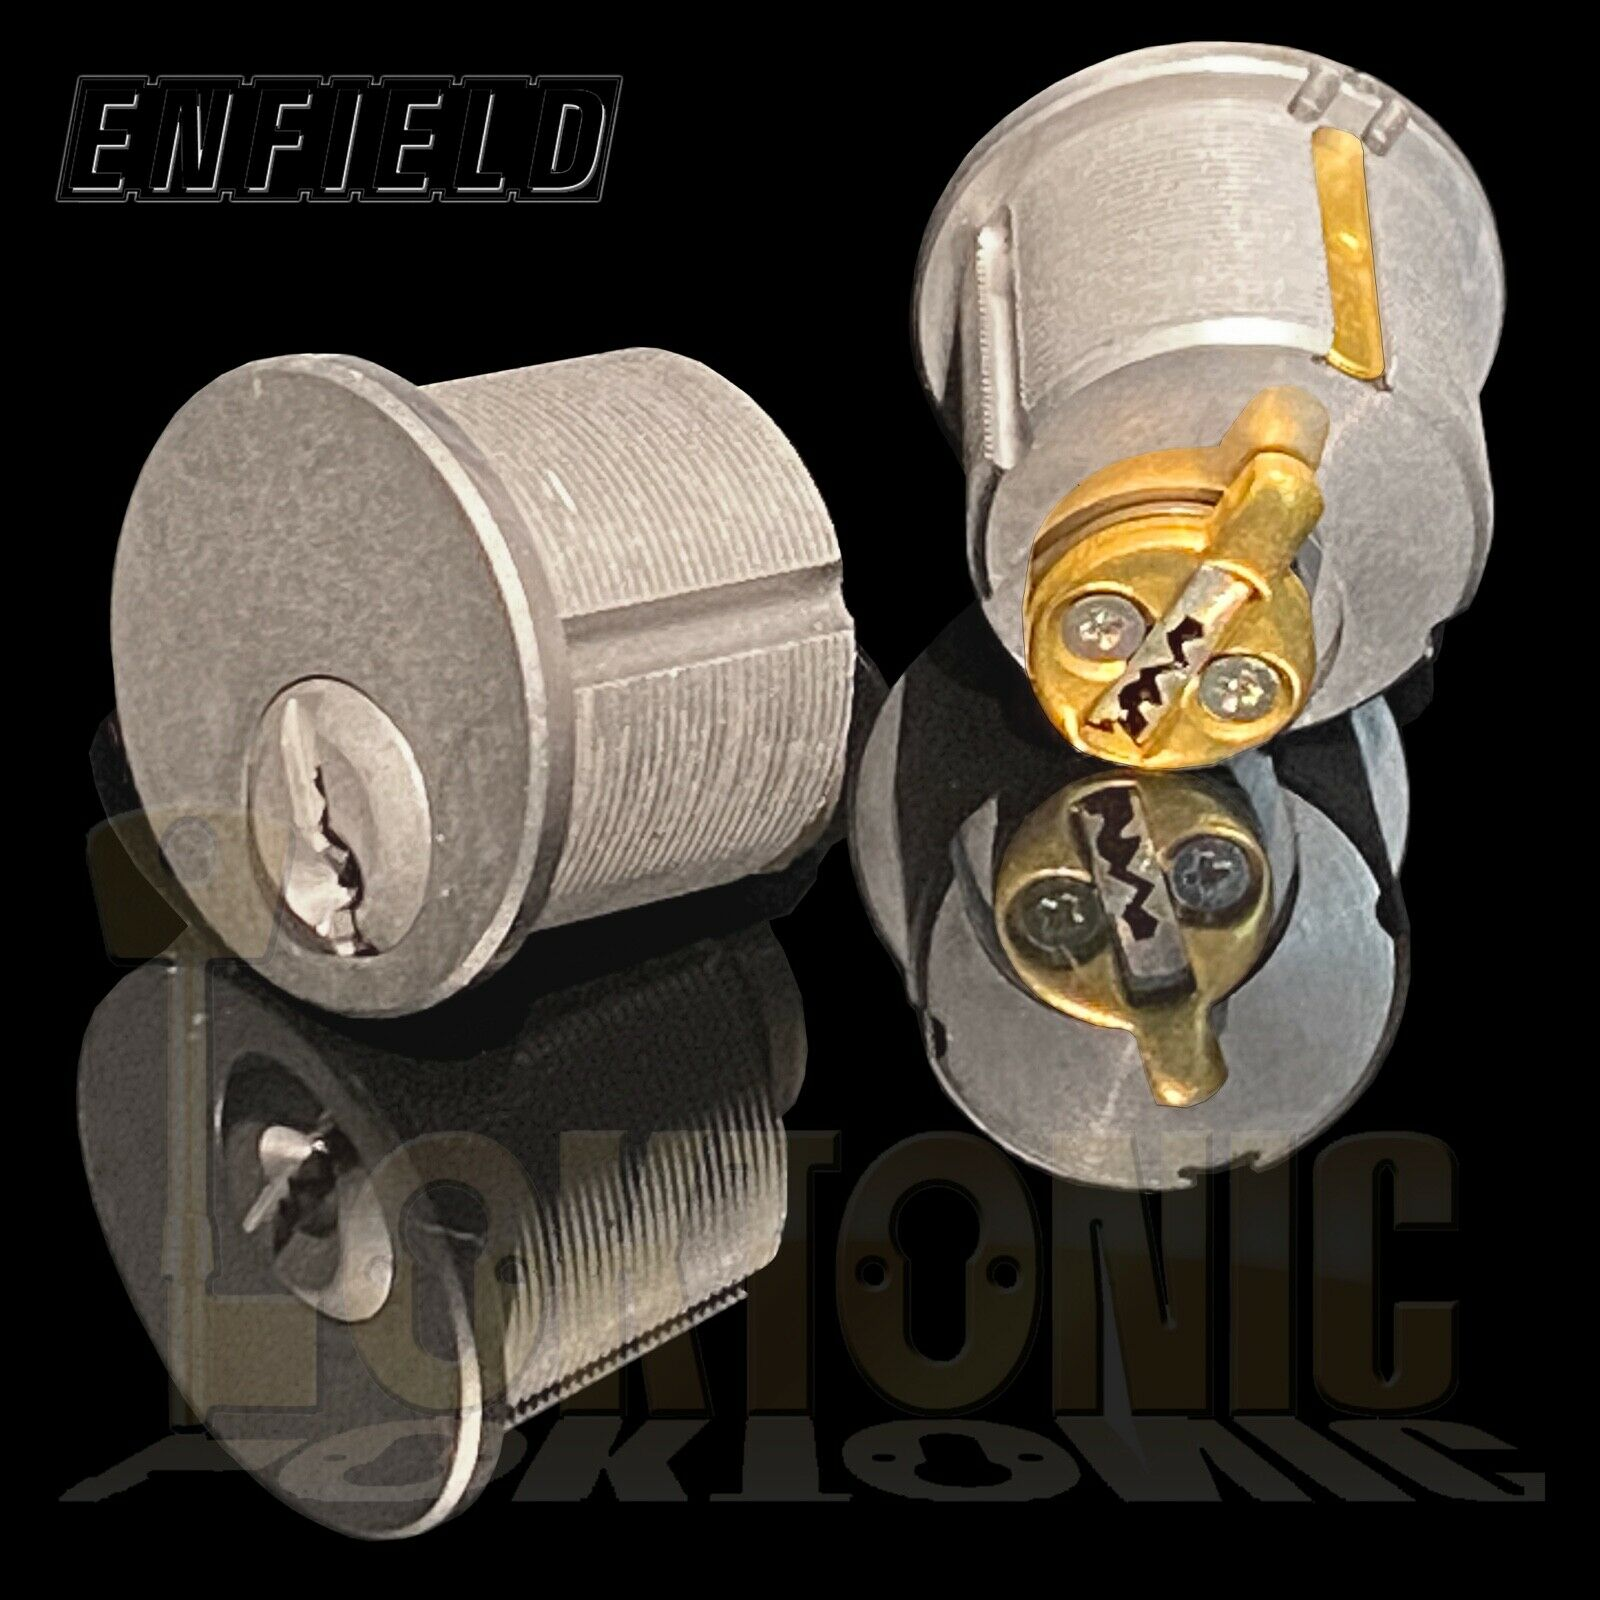 Enfield Screw In Round Mortice Cylinder Lock Barrel Pair